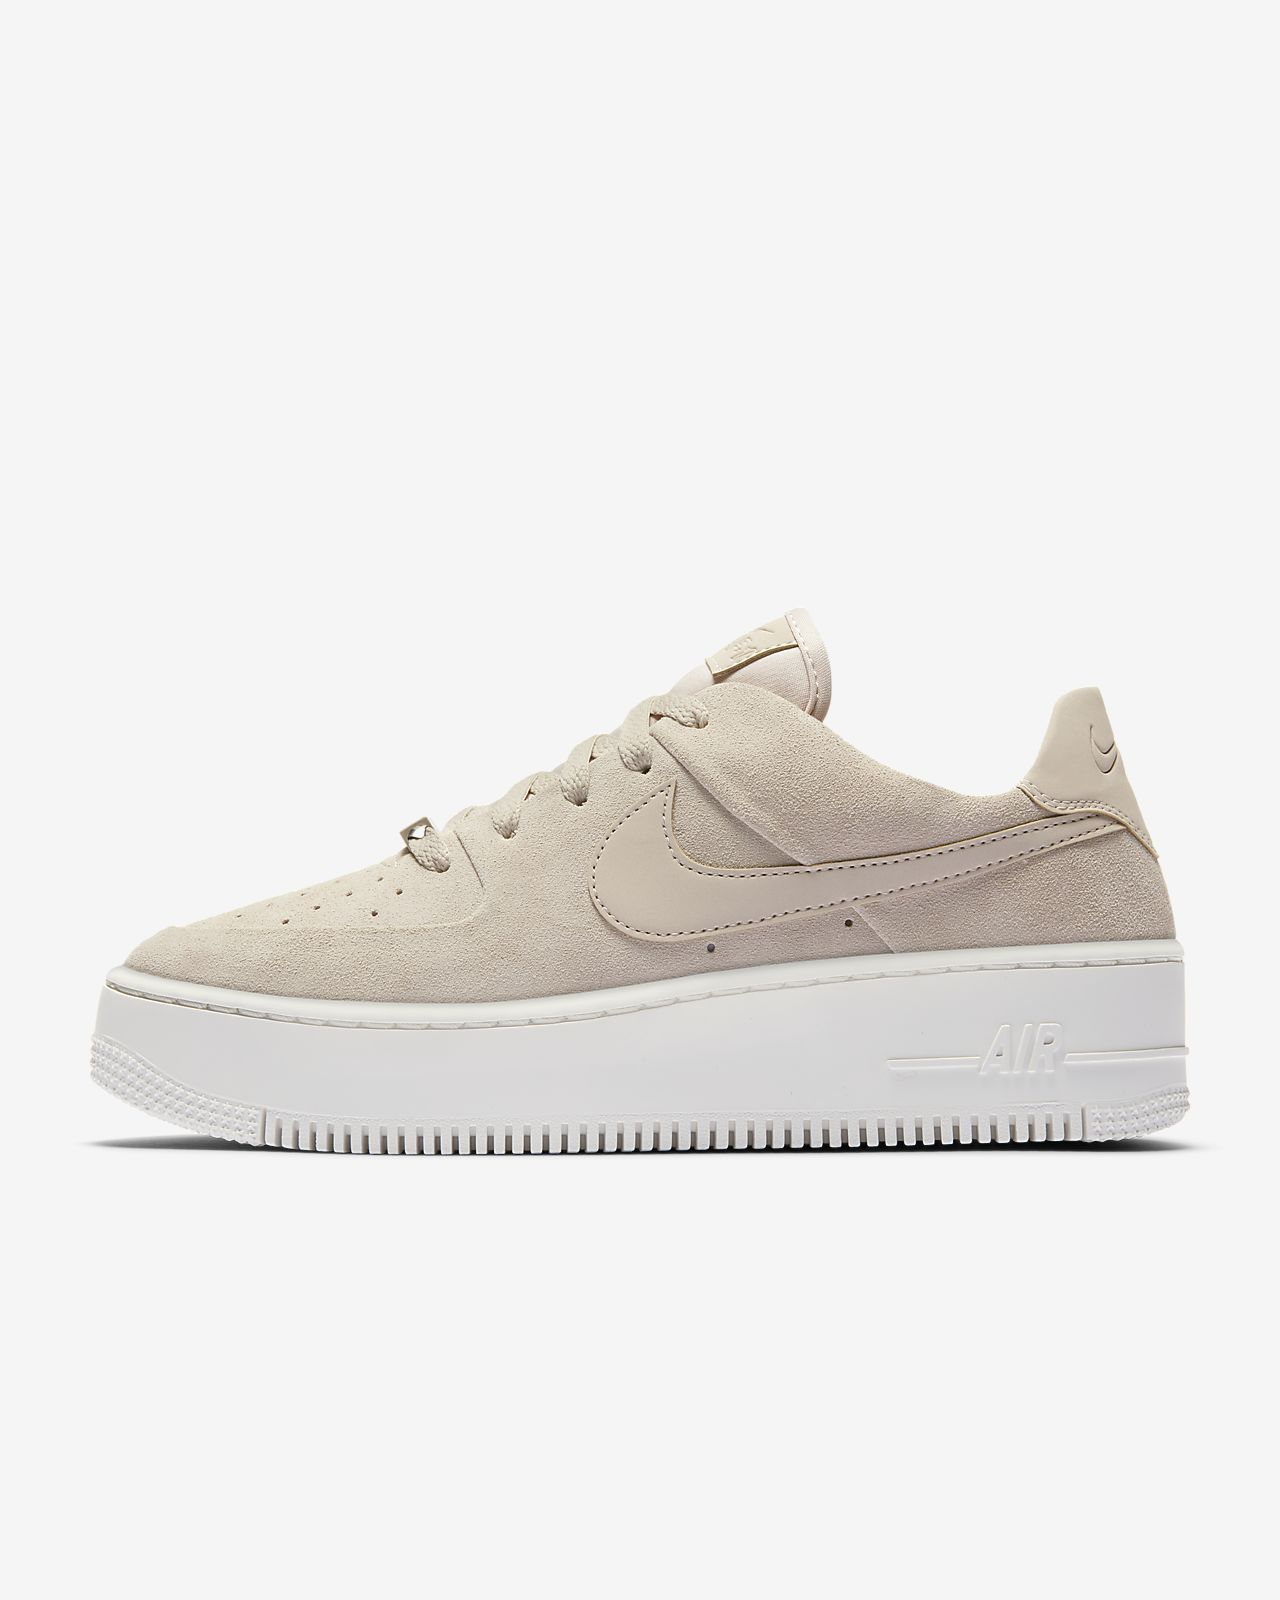 wholesale dealer 110e5 6630e Nike Air Force 1 Sage Low Women s Shoe